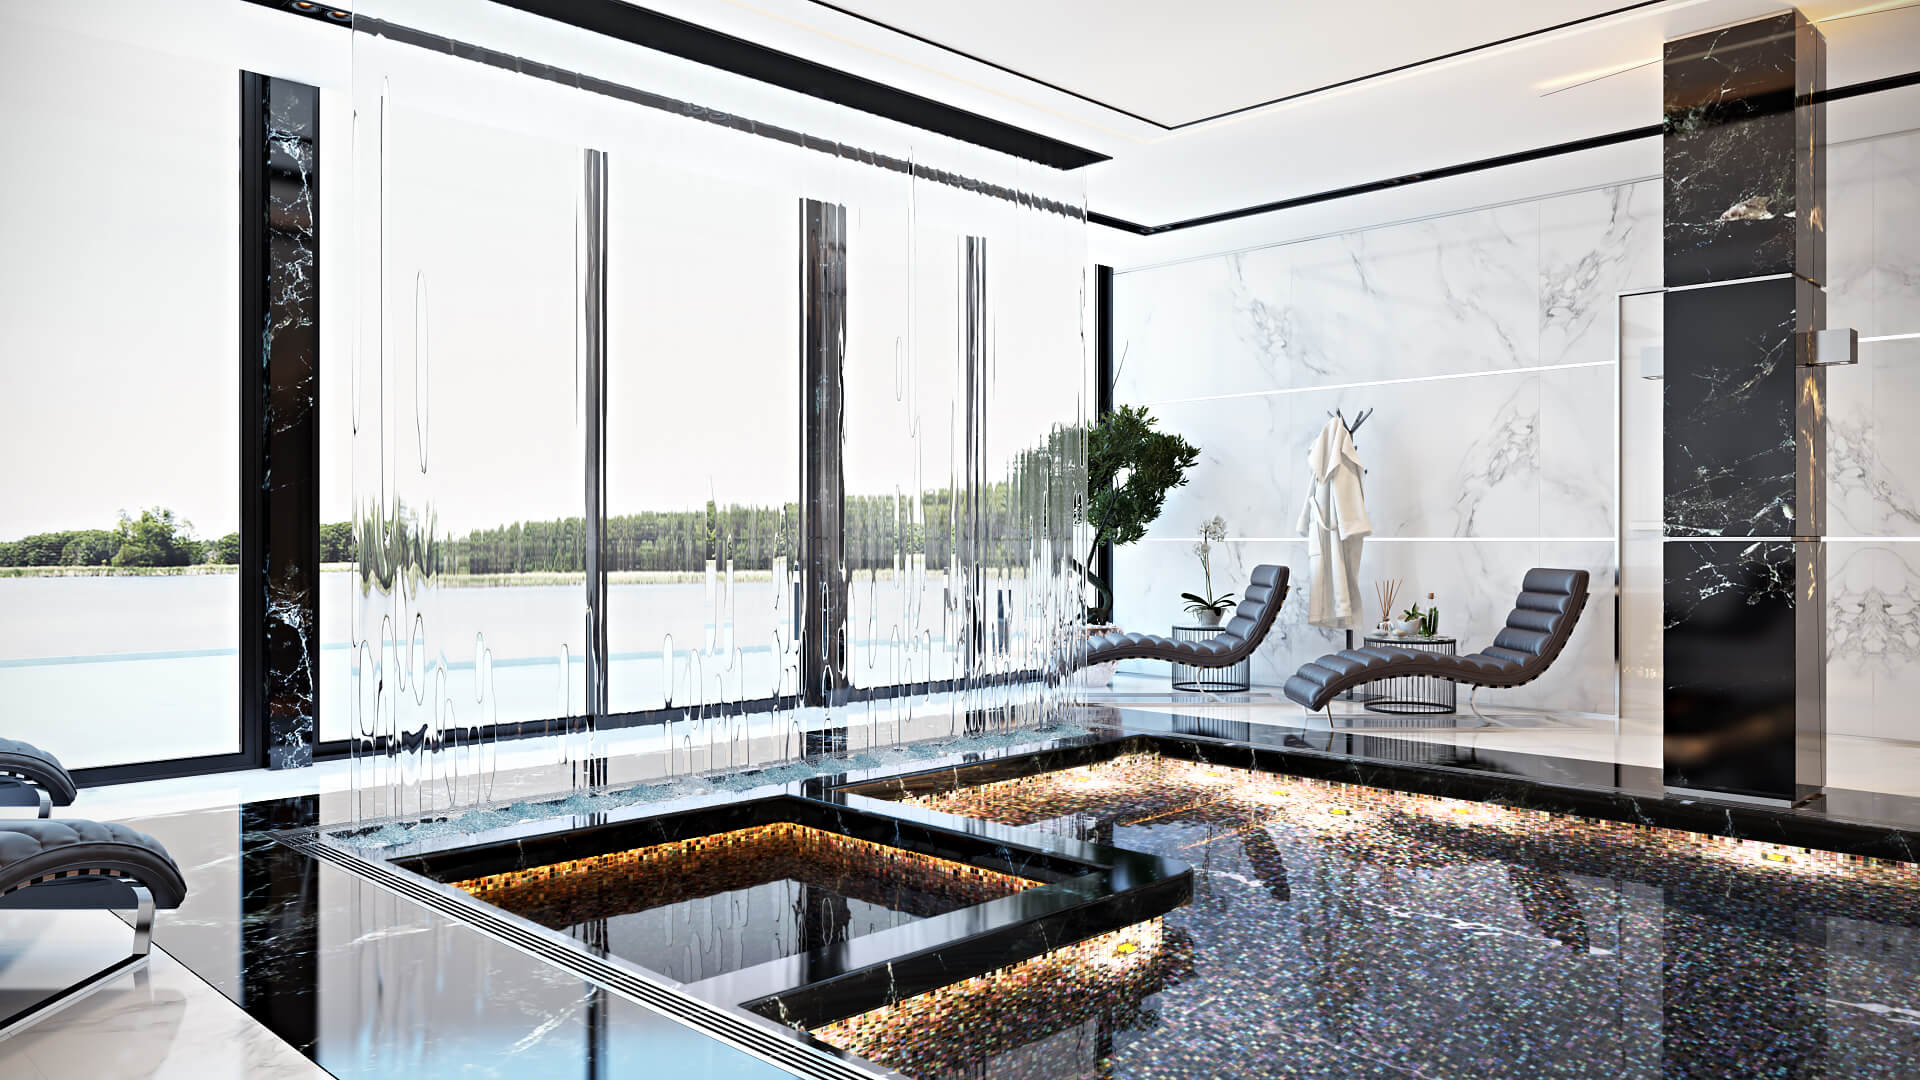 Quality Architecture Rendering For A Splendid Swimming Pool In Black And White Marble View02